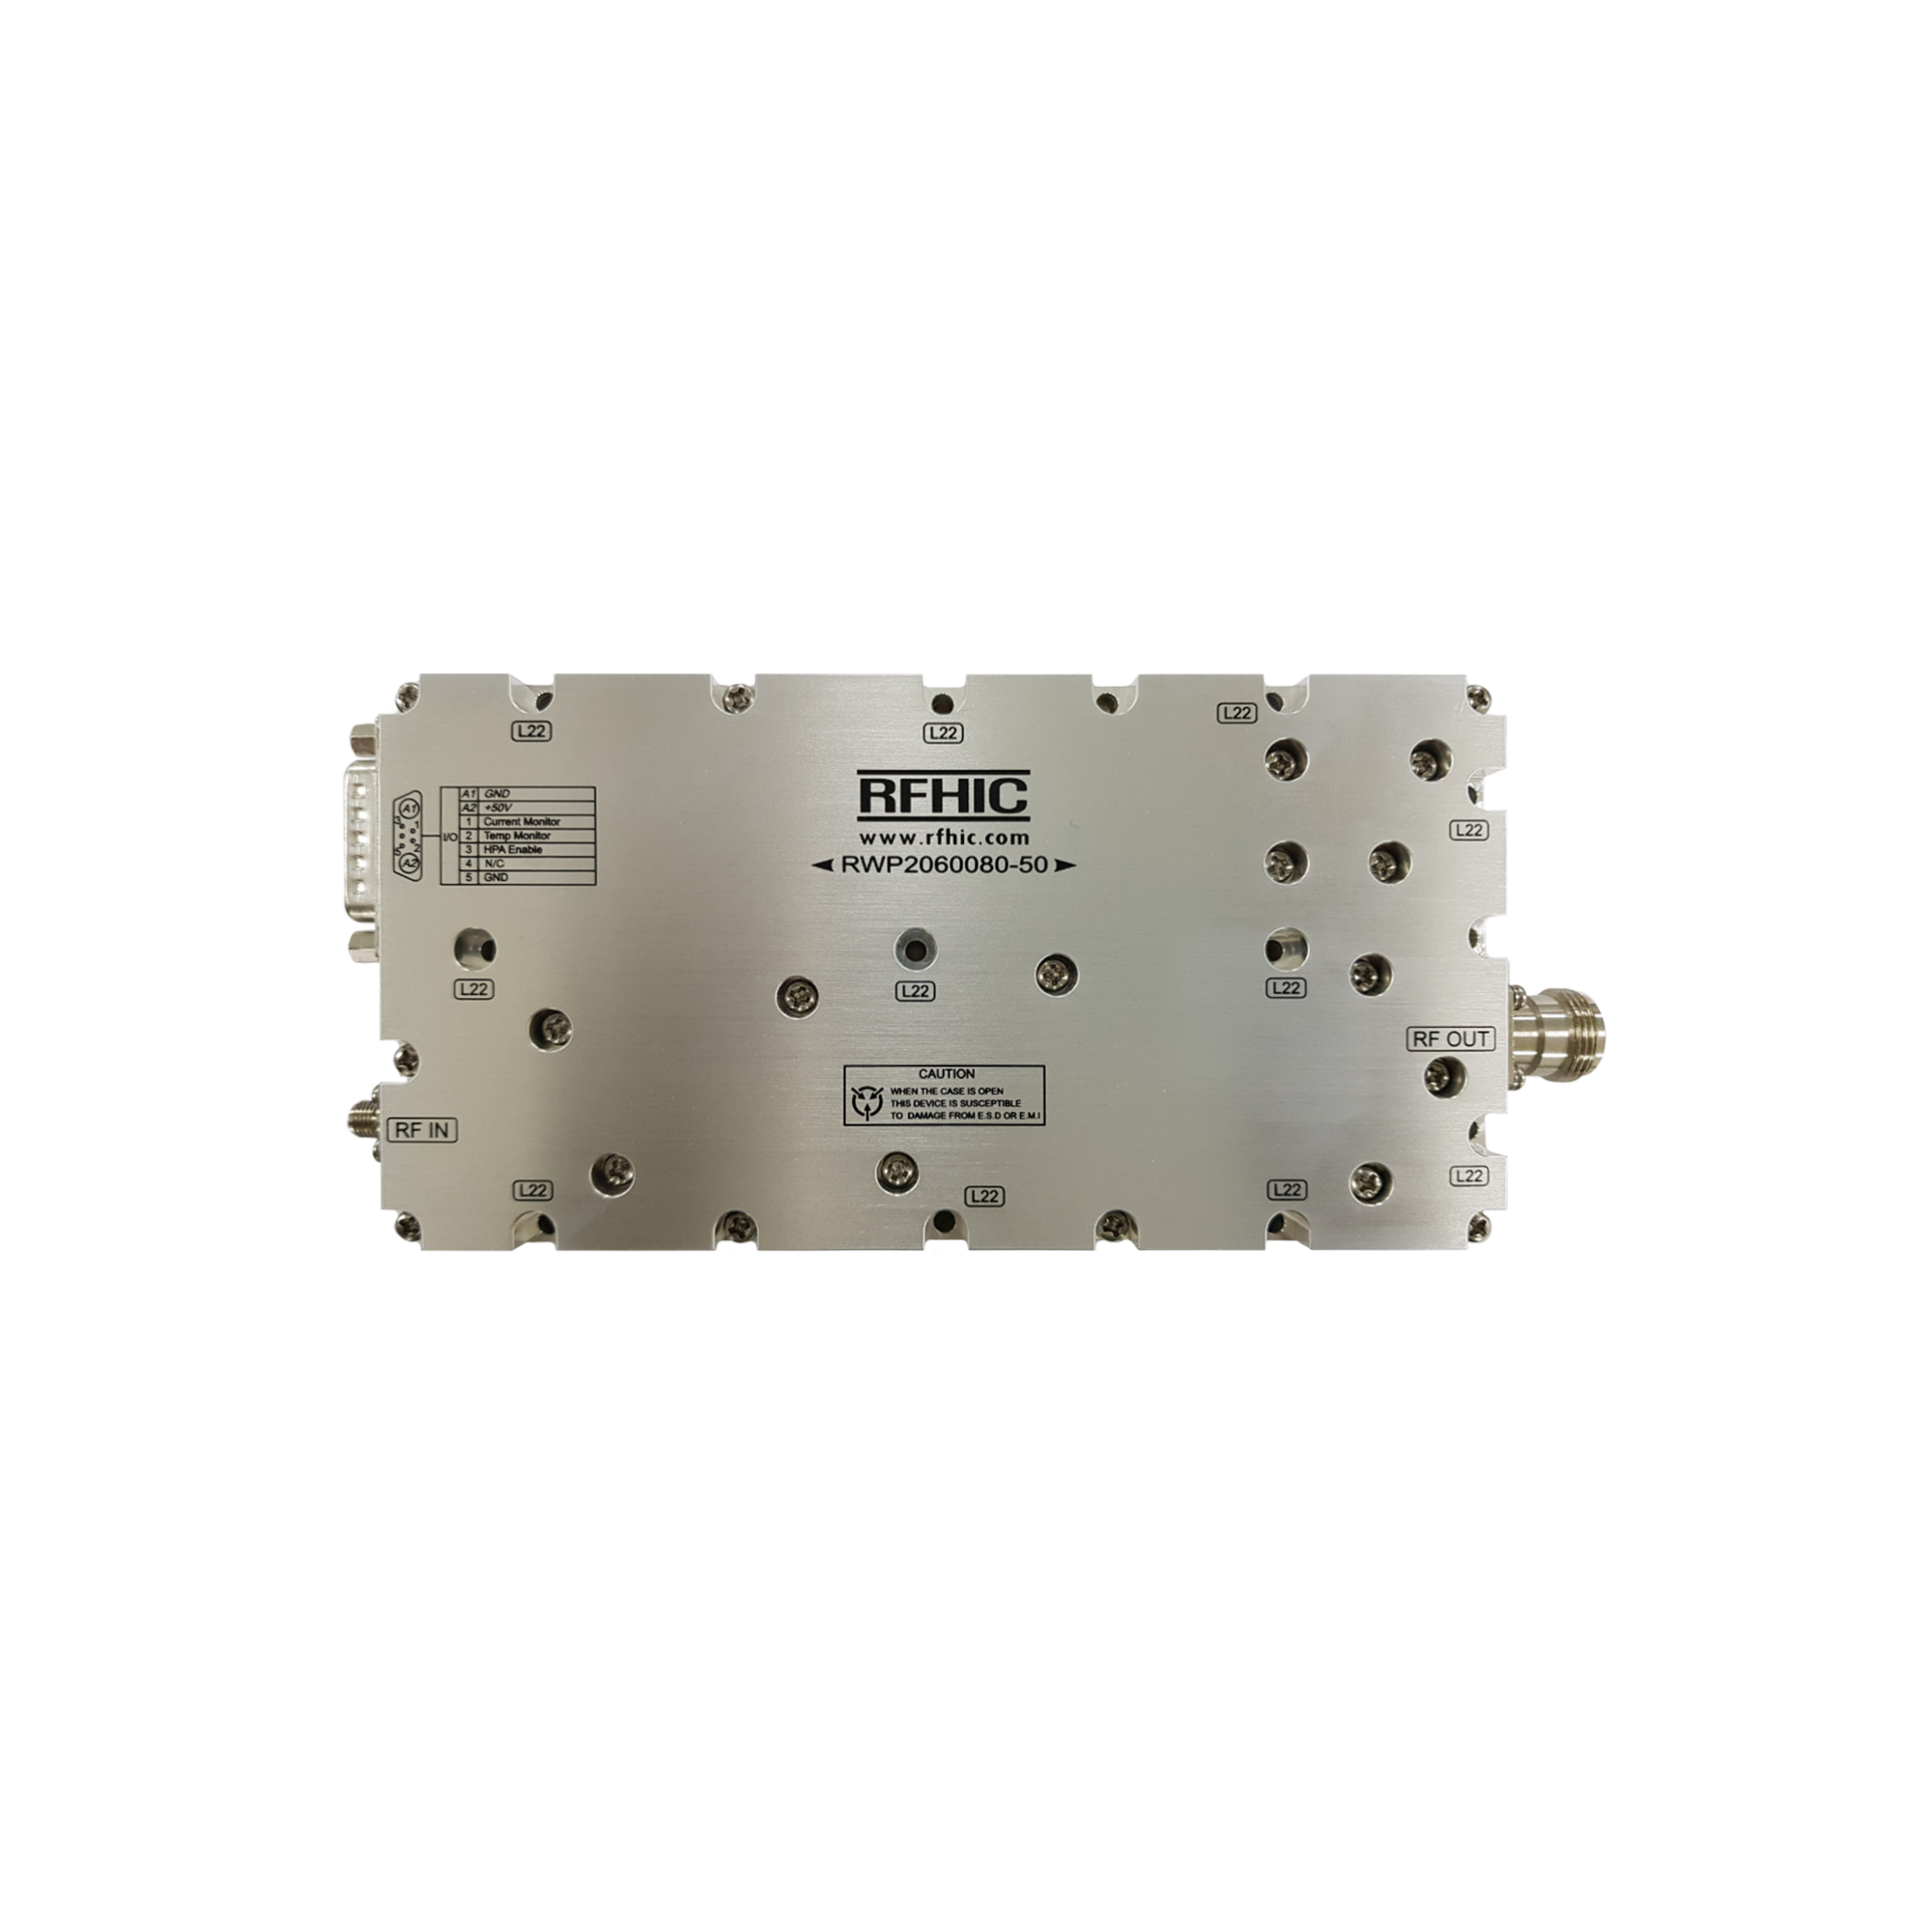 RWP2060080-50, 100W, 2-6GHz, GaN Wideband Amplifier-RFHIC